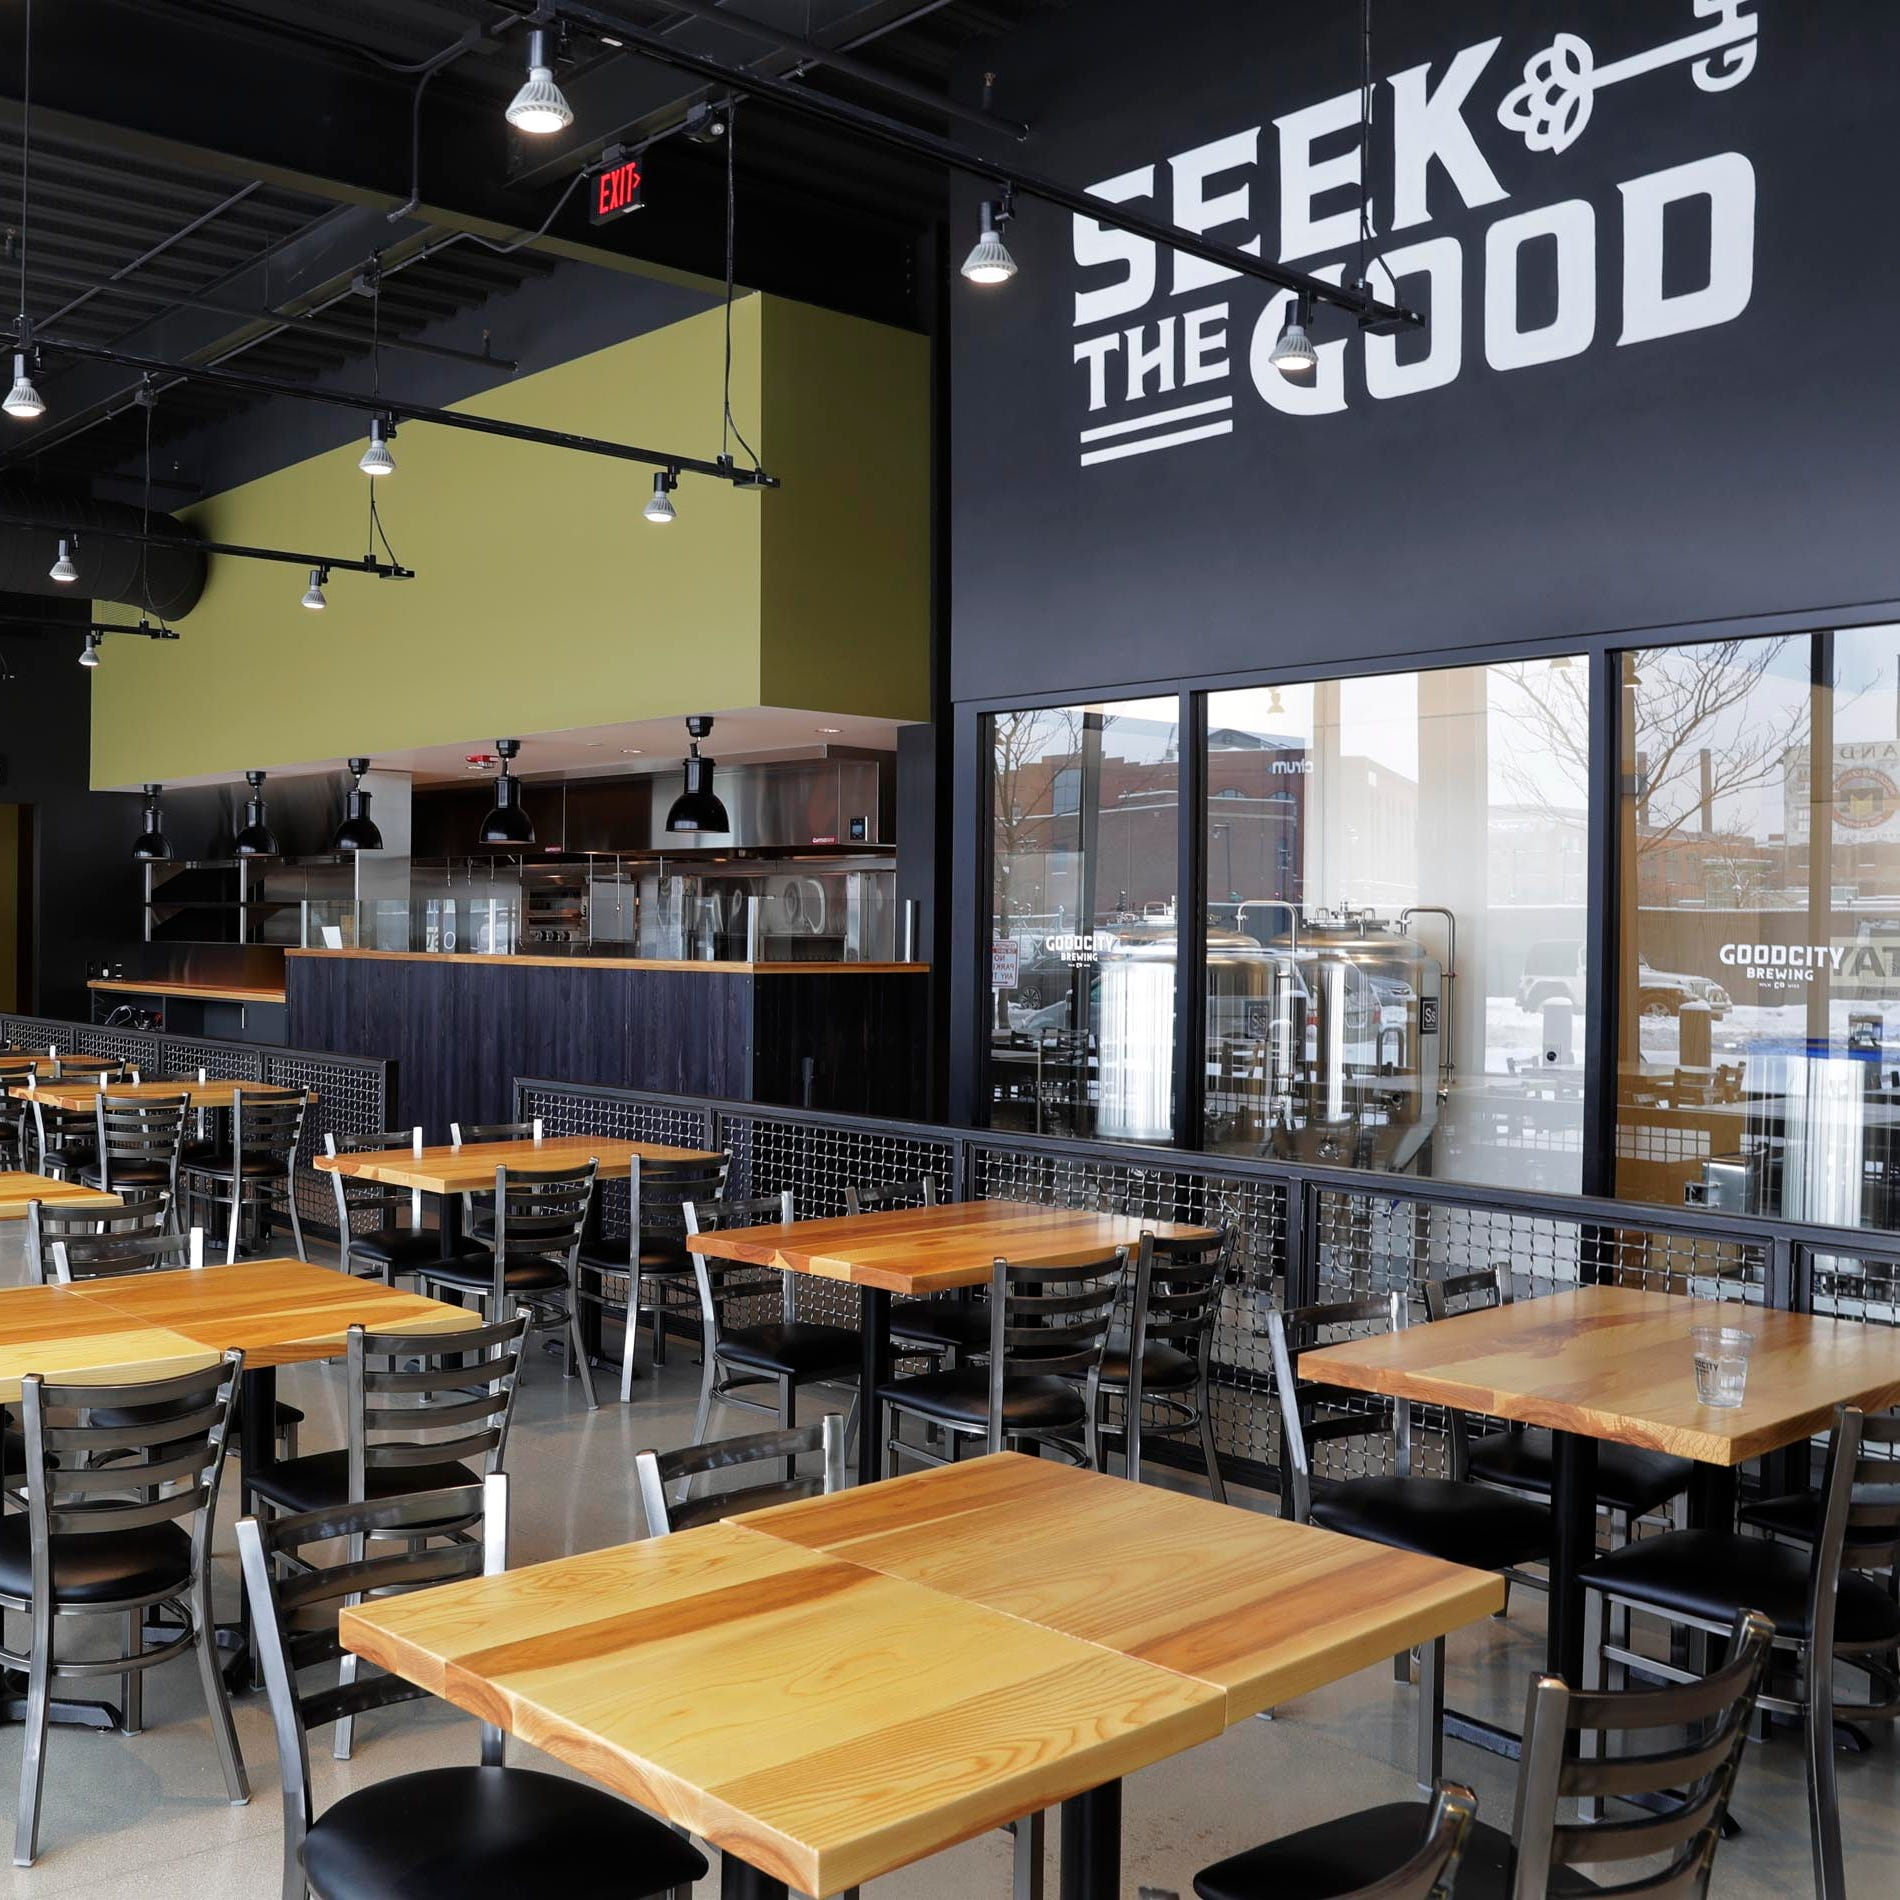 The Good City taproom across from Fiserv Forum is open, but just for beer right now